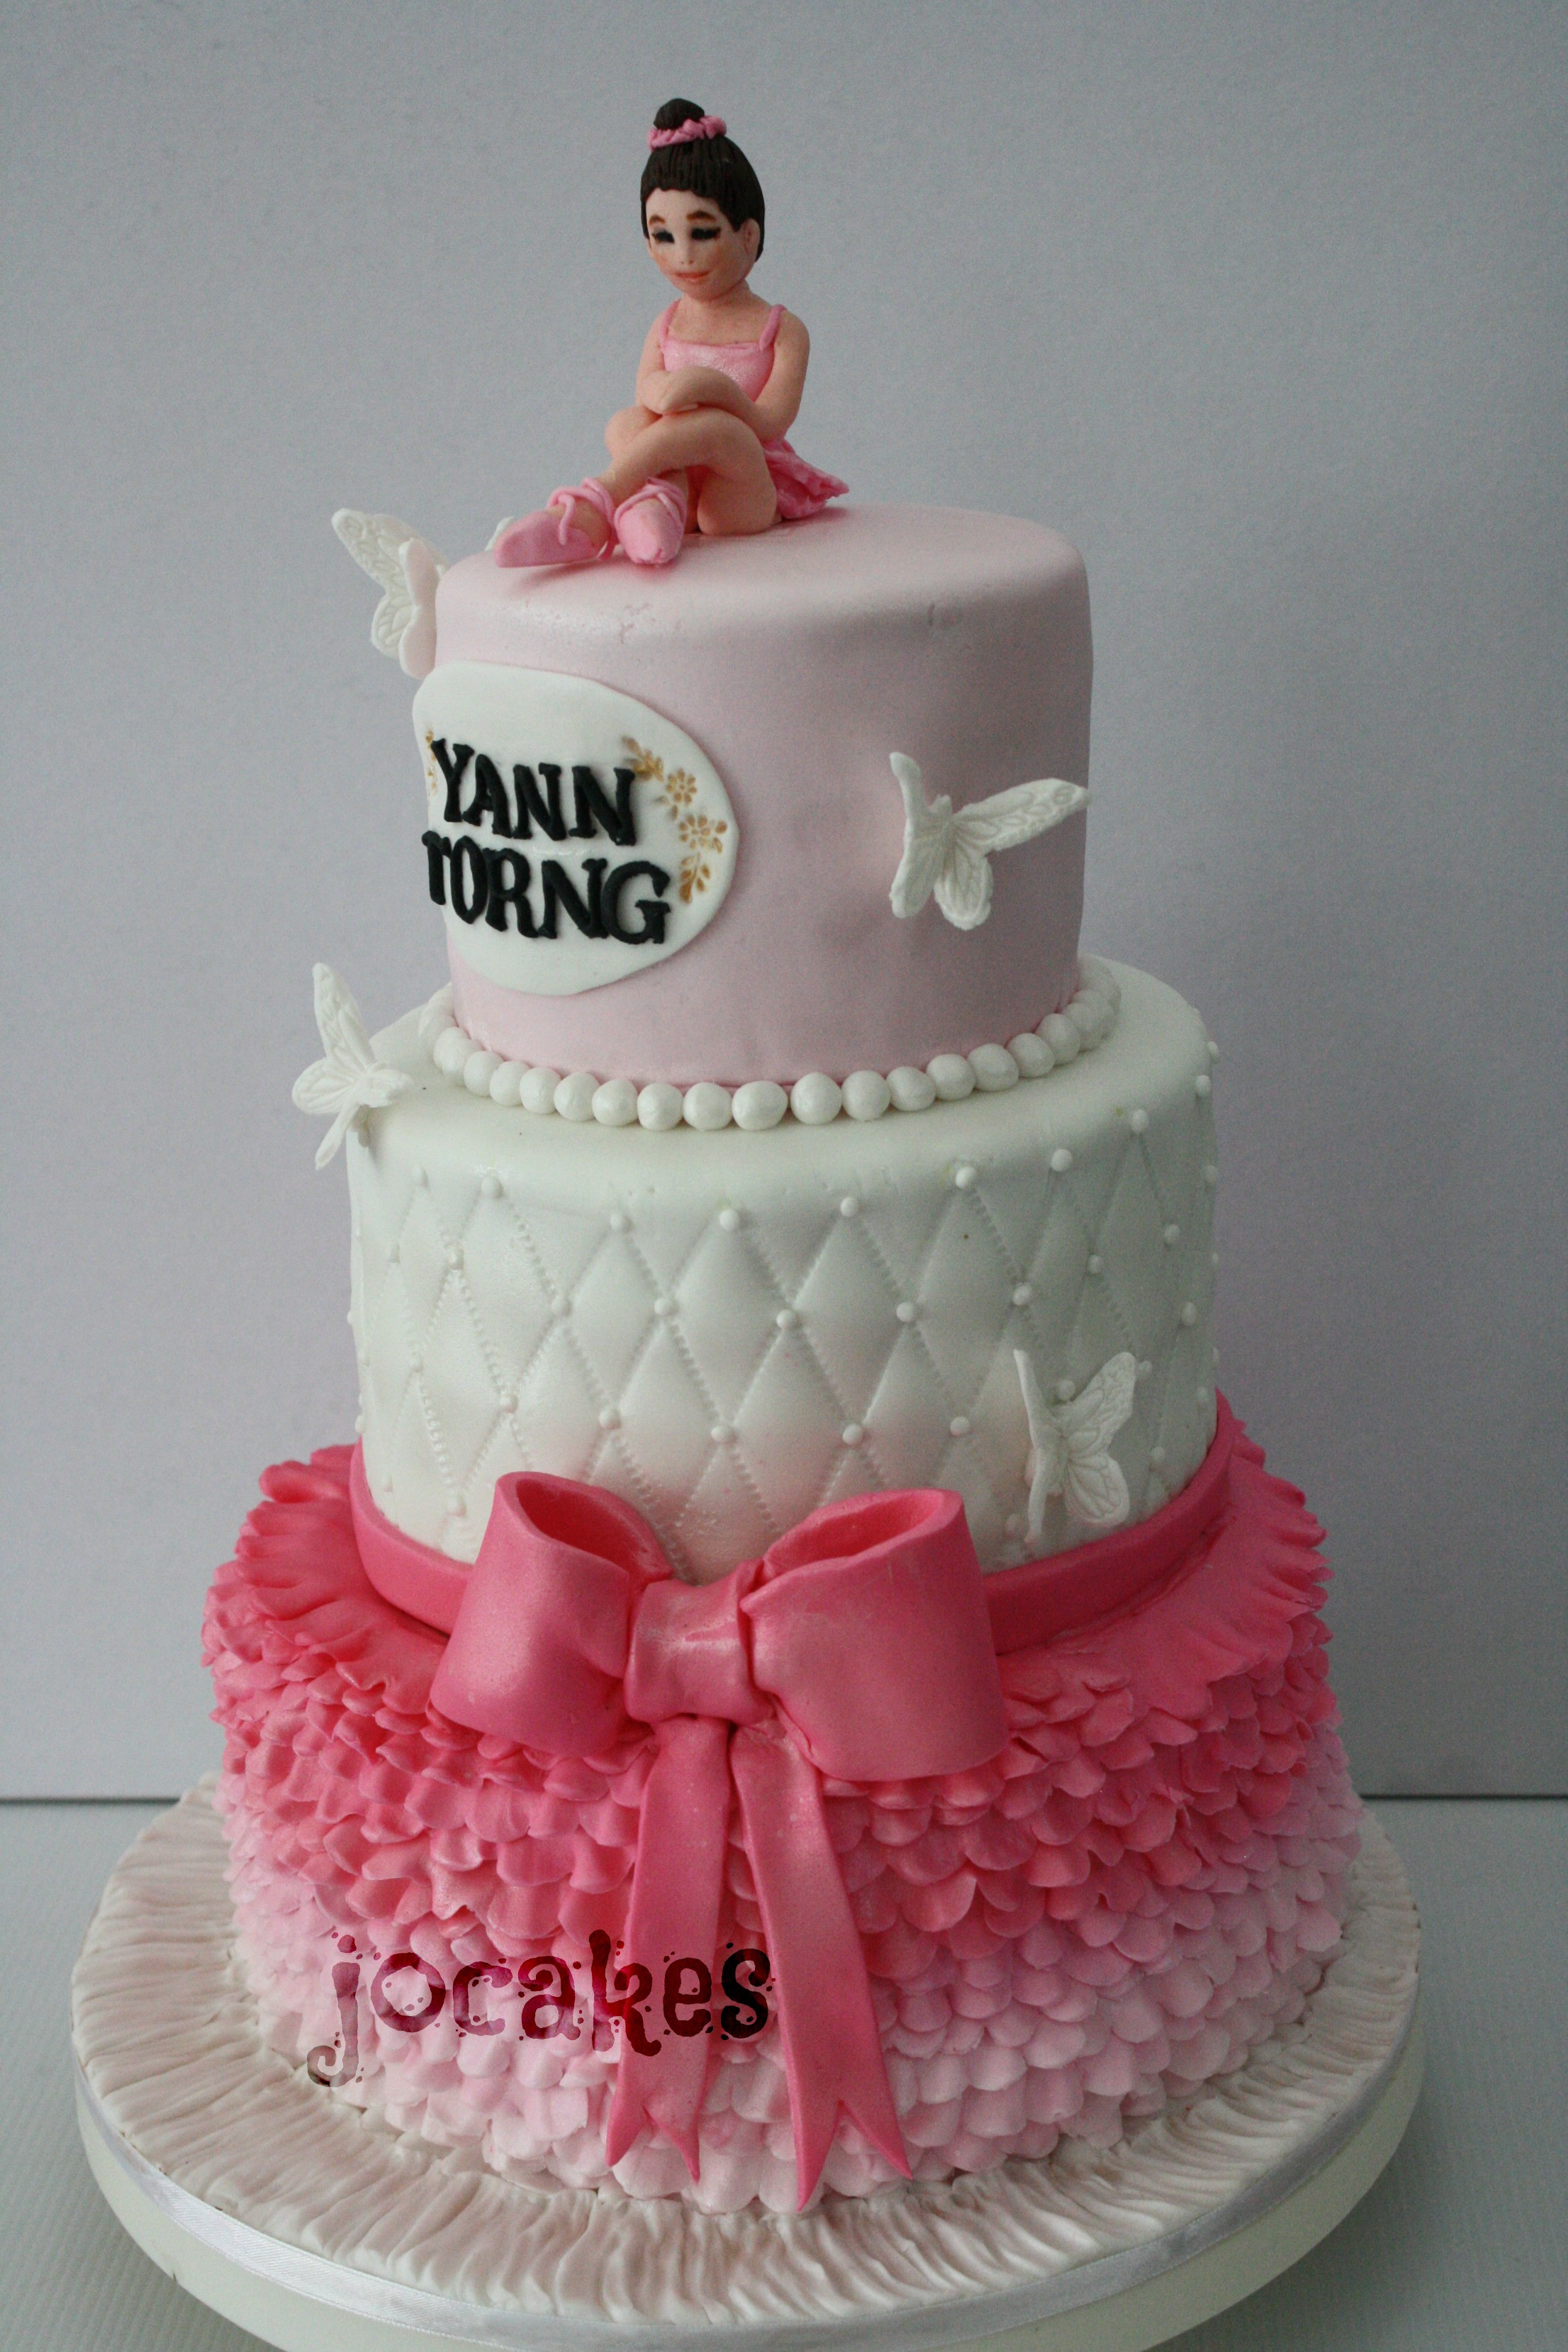 Best ideas about Ballerina Birthday Cake . Save or Pin Ballerina cake for Yann Torng 21st birthday Now.